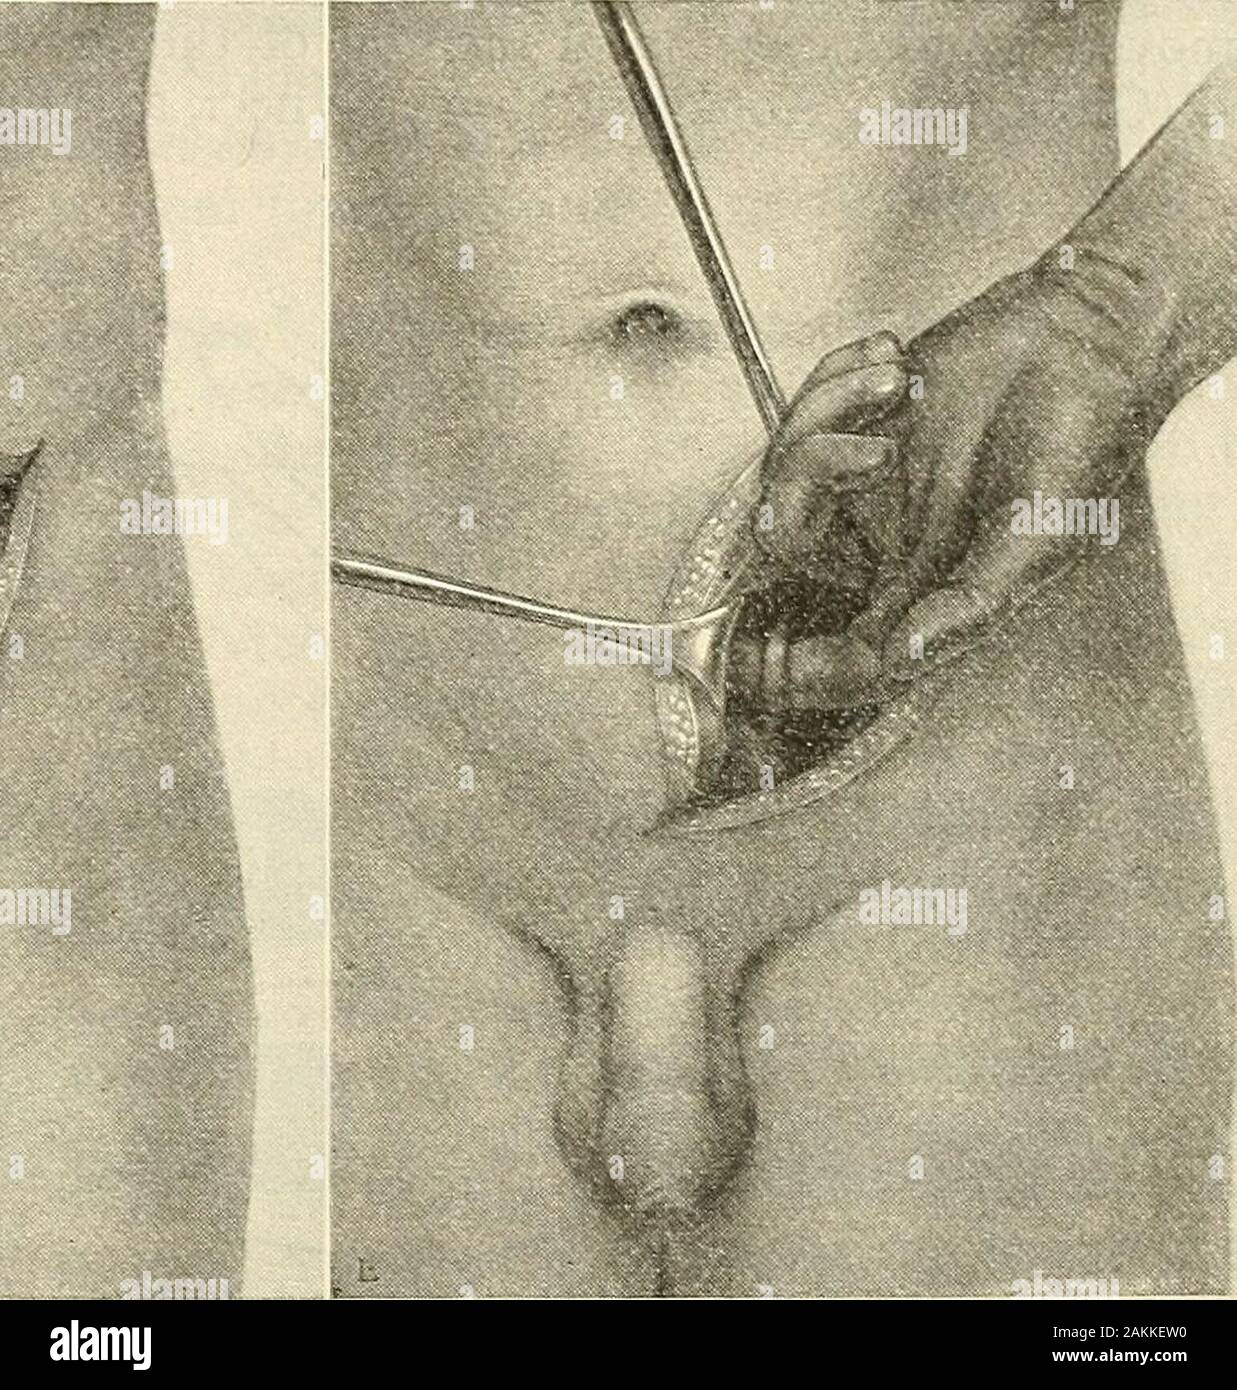 Modern surgery, general and operative . Fig. 861.—Gibsons indsion for operations onthe lower ureter. The edge of the rectus muscleis strongly retracted inward; between it and thecut edge of the transversalis fascia the peritoneumis exposed (C. L. Gibson). Fig. S62.—Gibsons incision for operationson the lower ureter. The peritoneum has beenpushed upward. The ureter is hfted out of thepelvis and brought to the level of the externalwound (C. L. Gibson). turbed at all. With efi&cient retraction of the upper flap the external borderof the rectus muscle is identified (Fig. S60) and the fascia of the Stock Photo